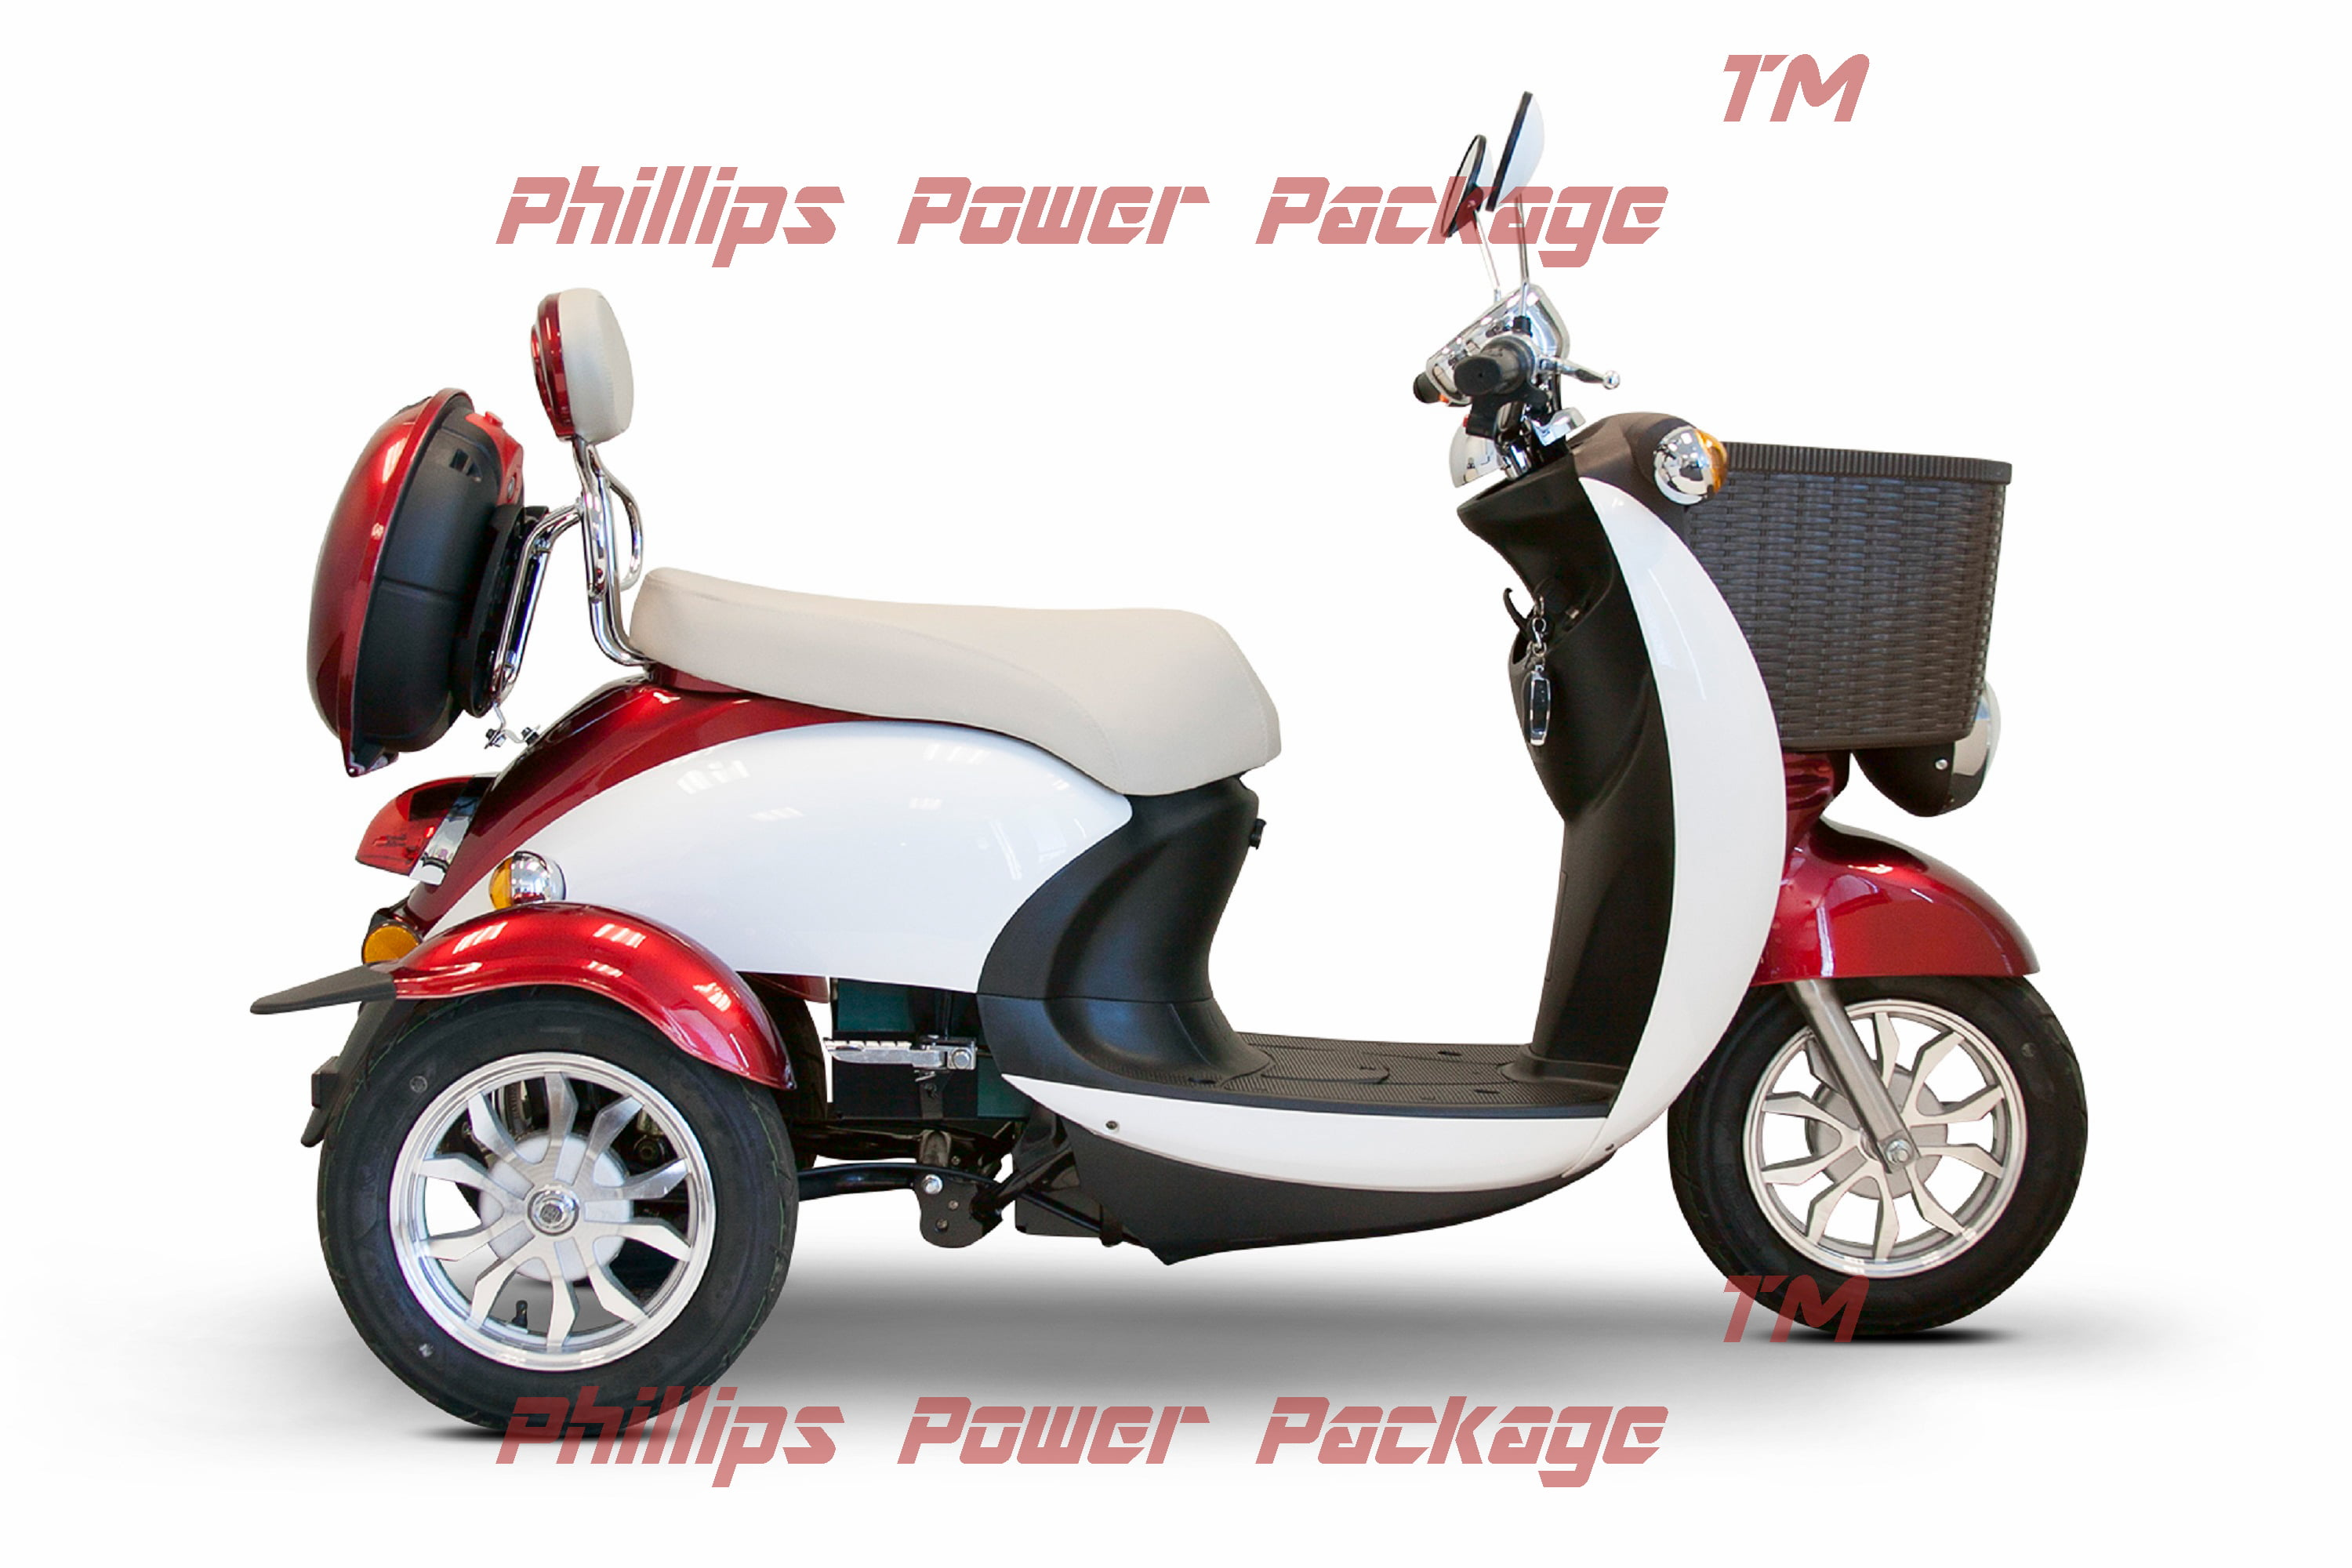 E-Wheels EW-11 Sport Euro Type Scooter 3-Wheel Red White PHILLIPS POWER PACKAGE TM $500 VALUE by Ewheels